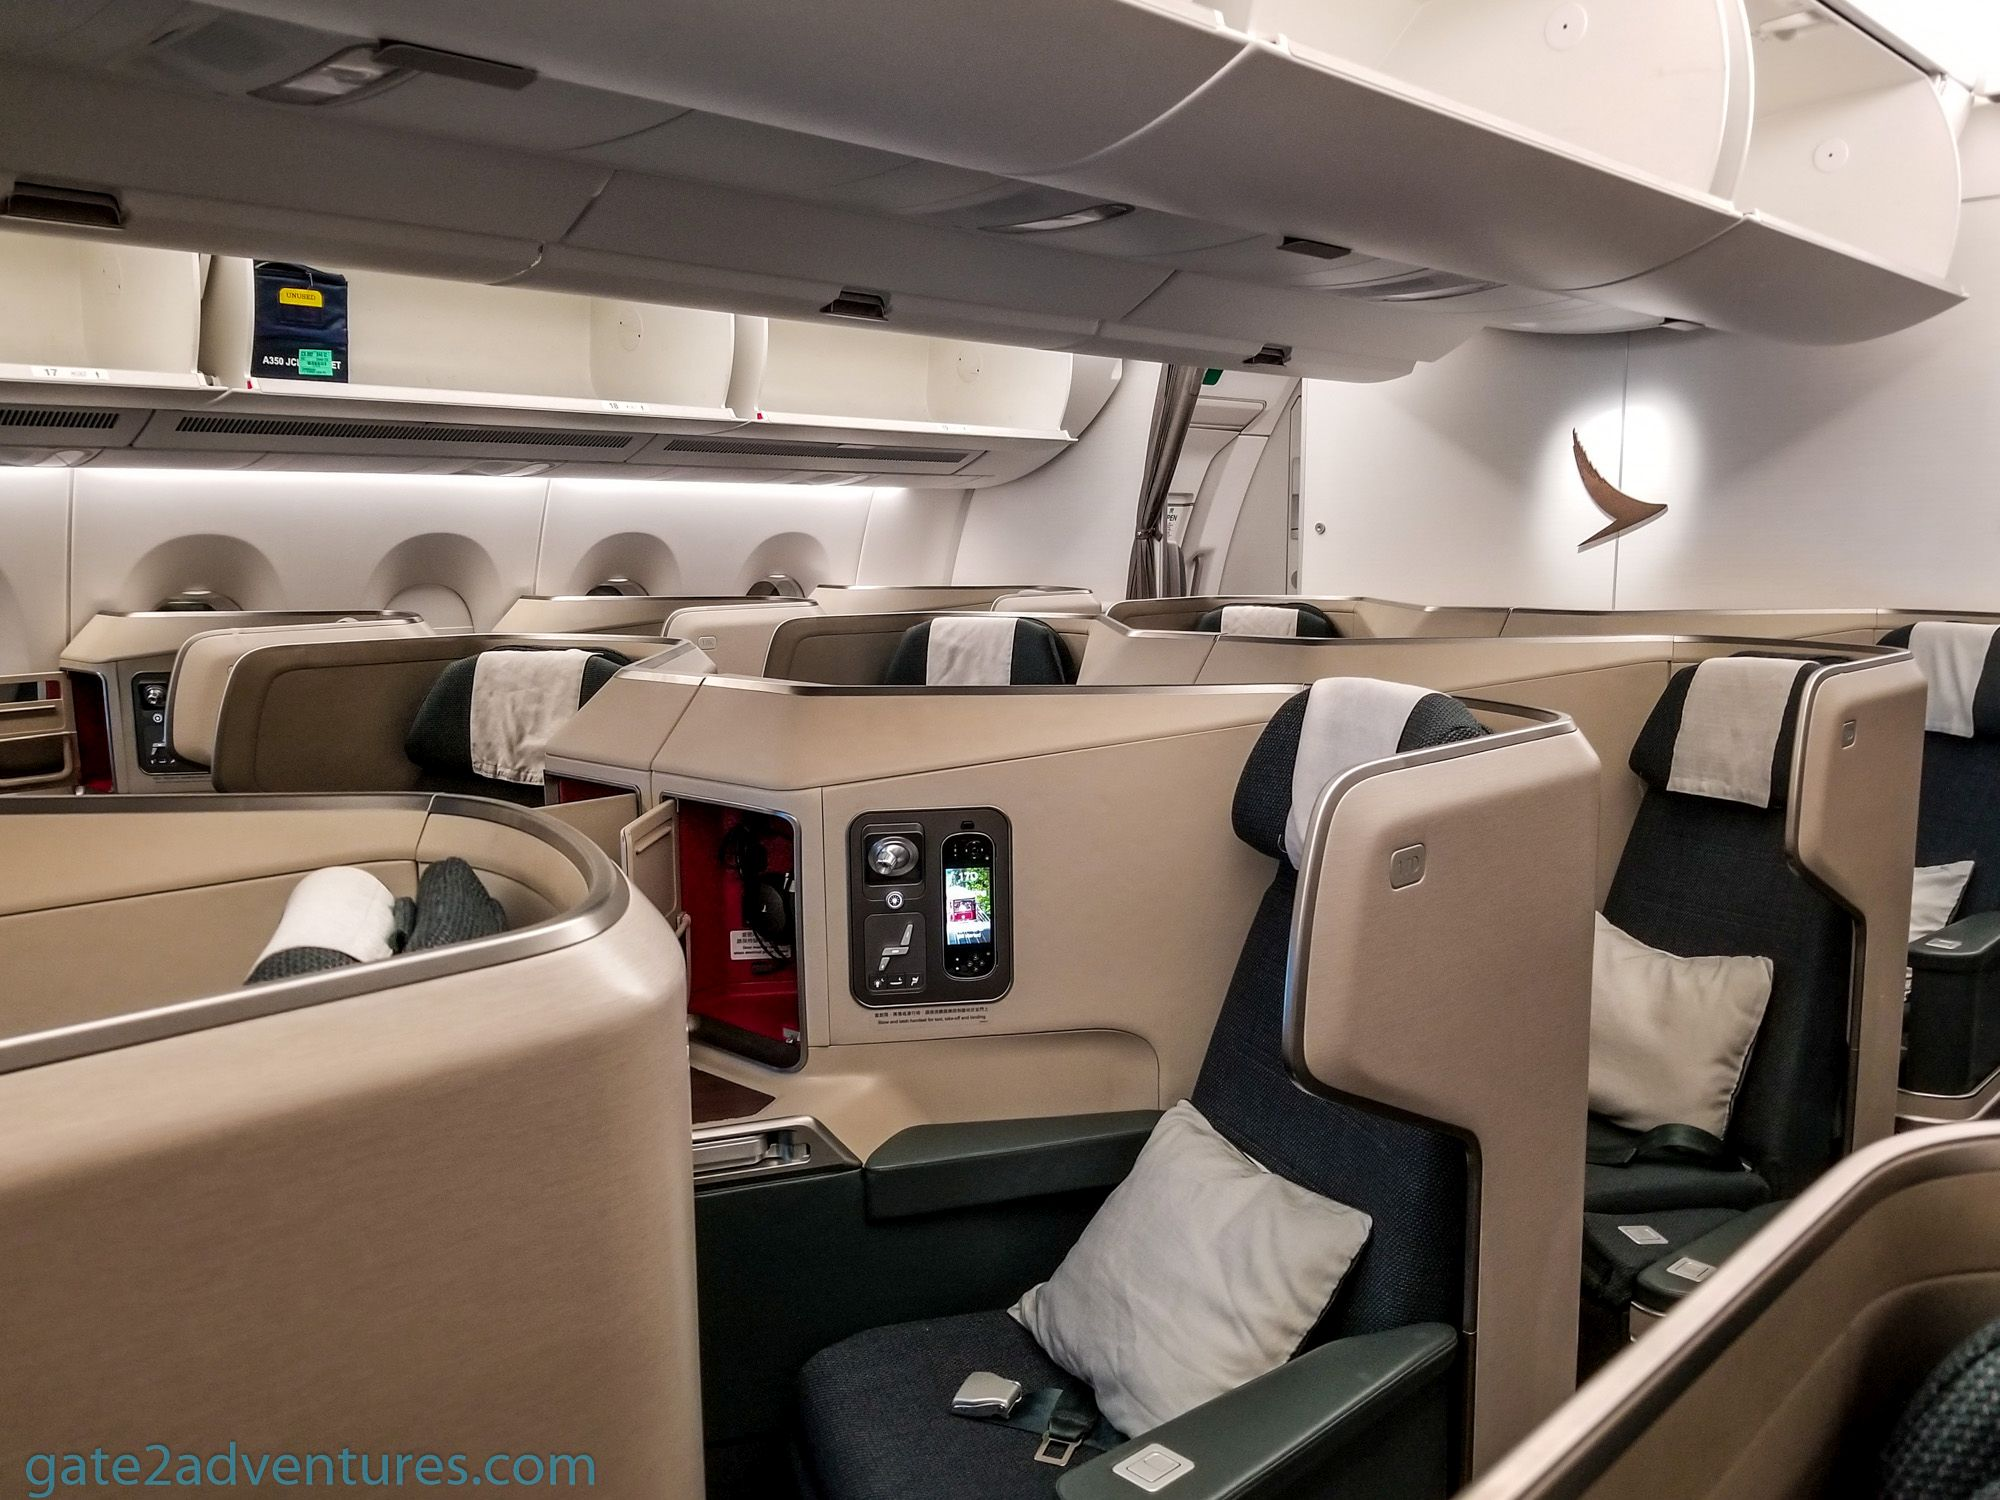 Flight Review: Cathay Pacific Business Class – Airbus A350 San Francisco (SFO) to Hong Kong (HKG)